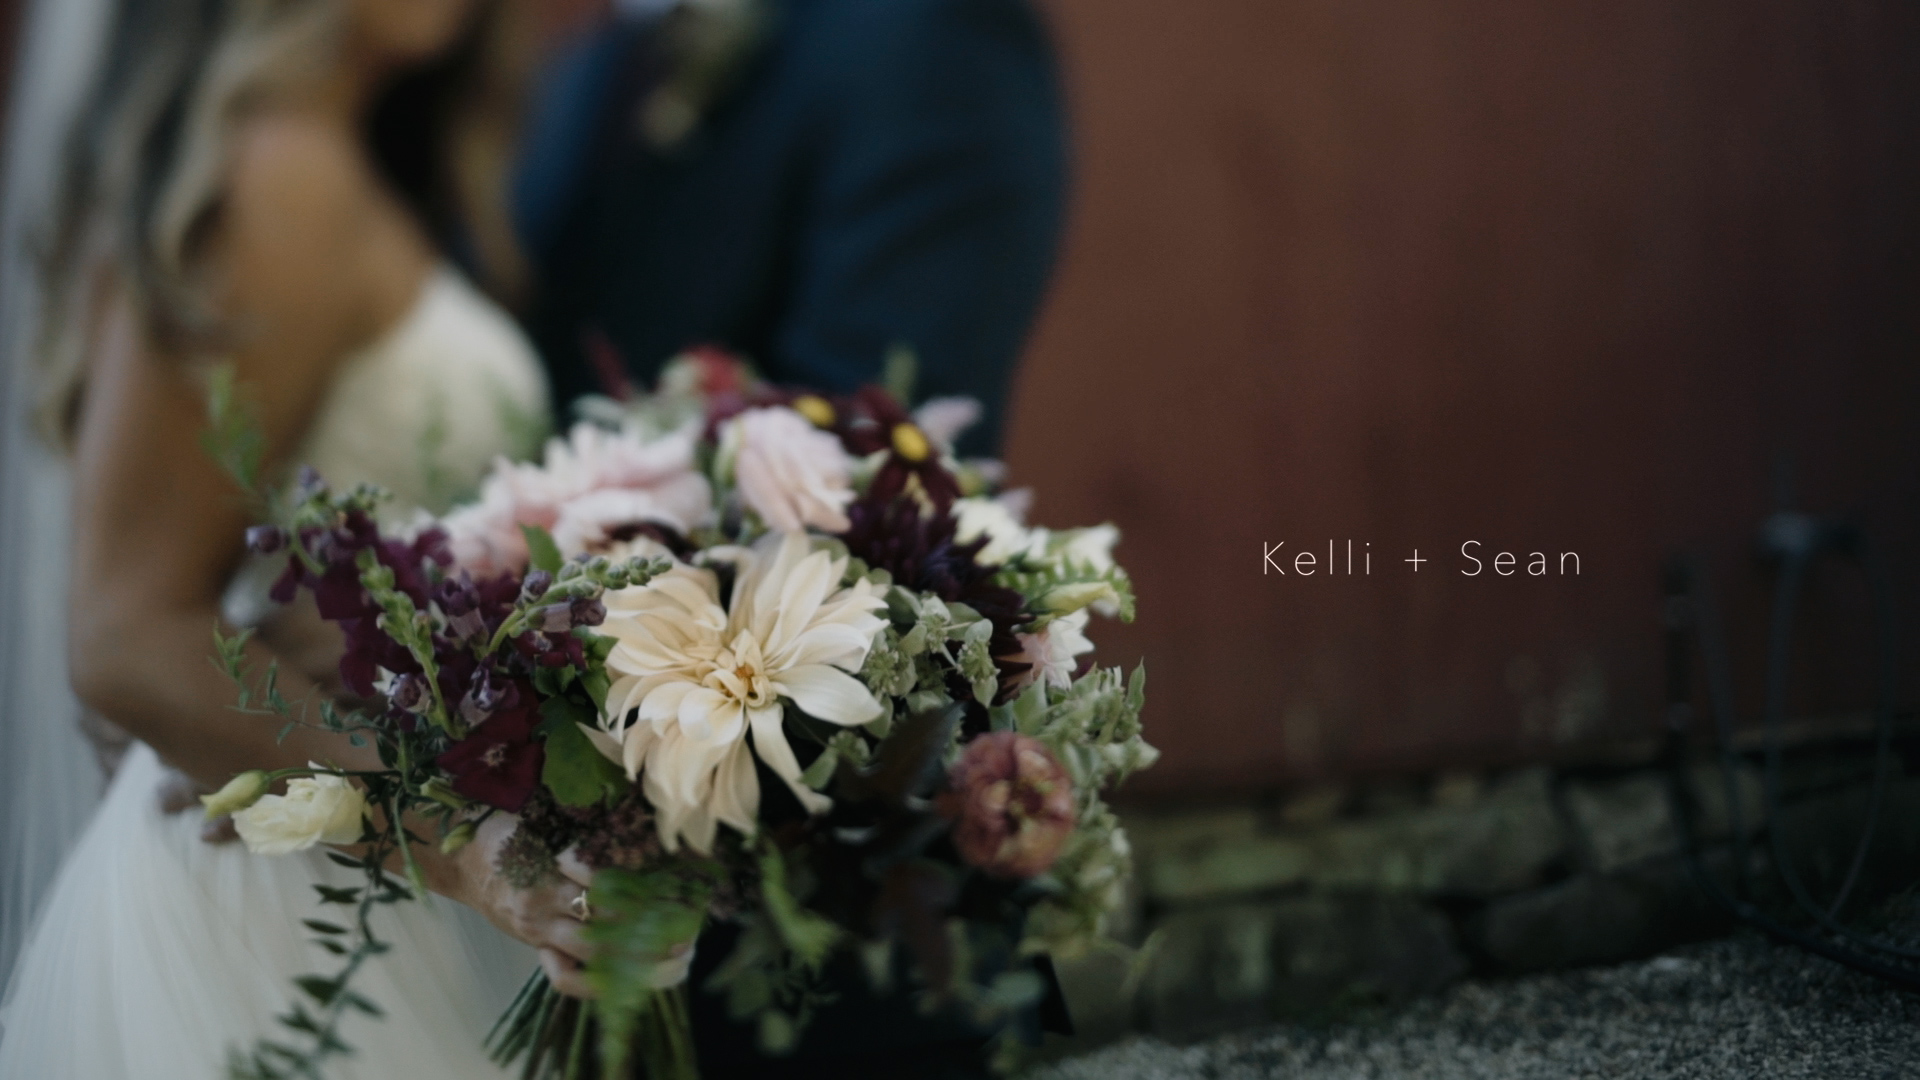 Kelli + Sean | Pownal, Maine | William Allen Farm